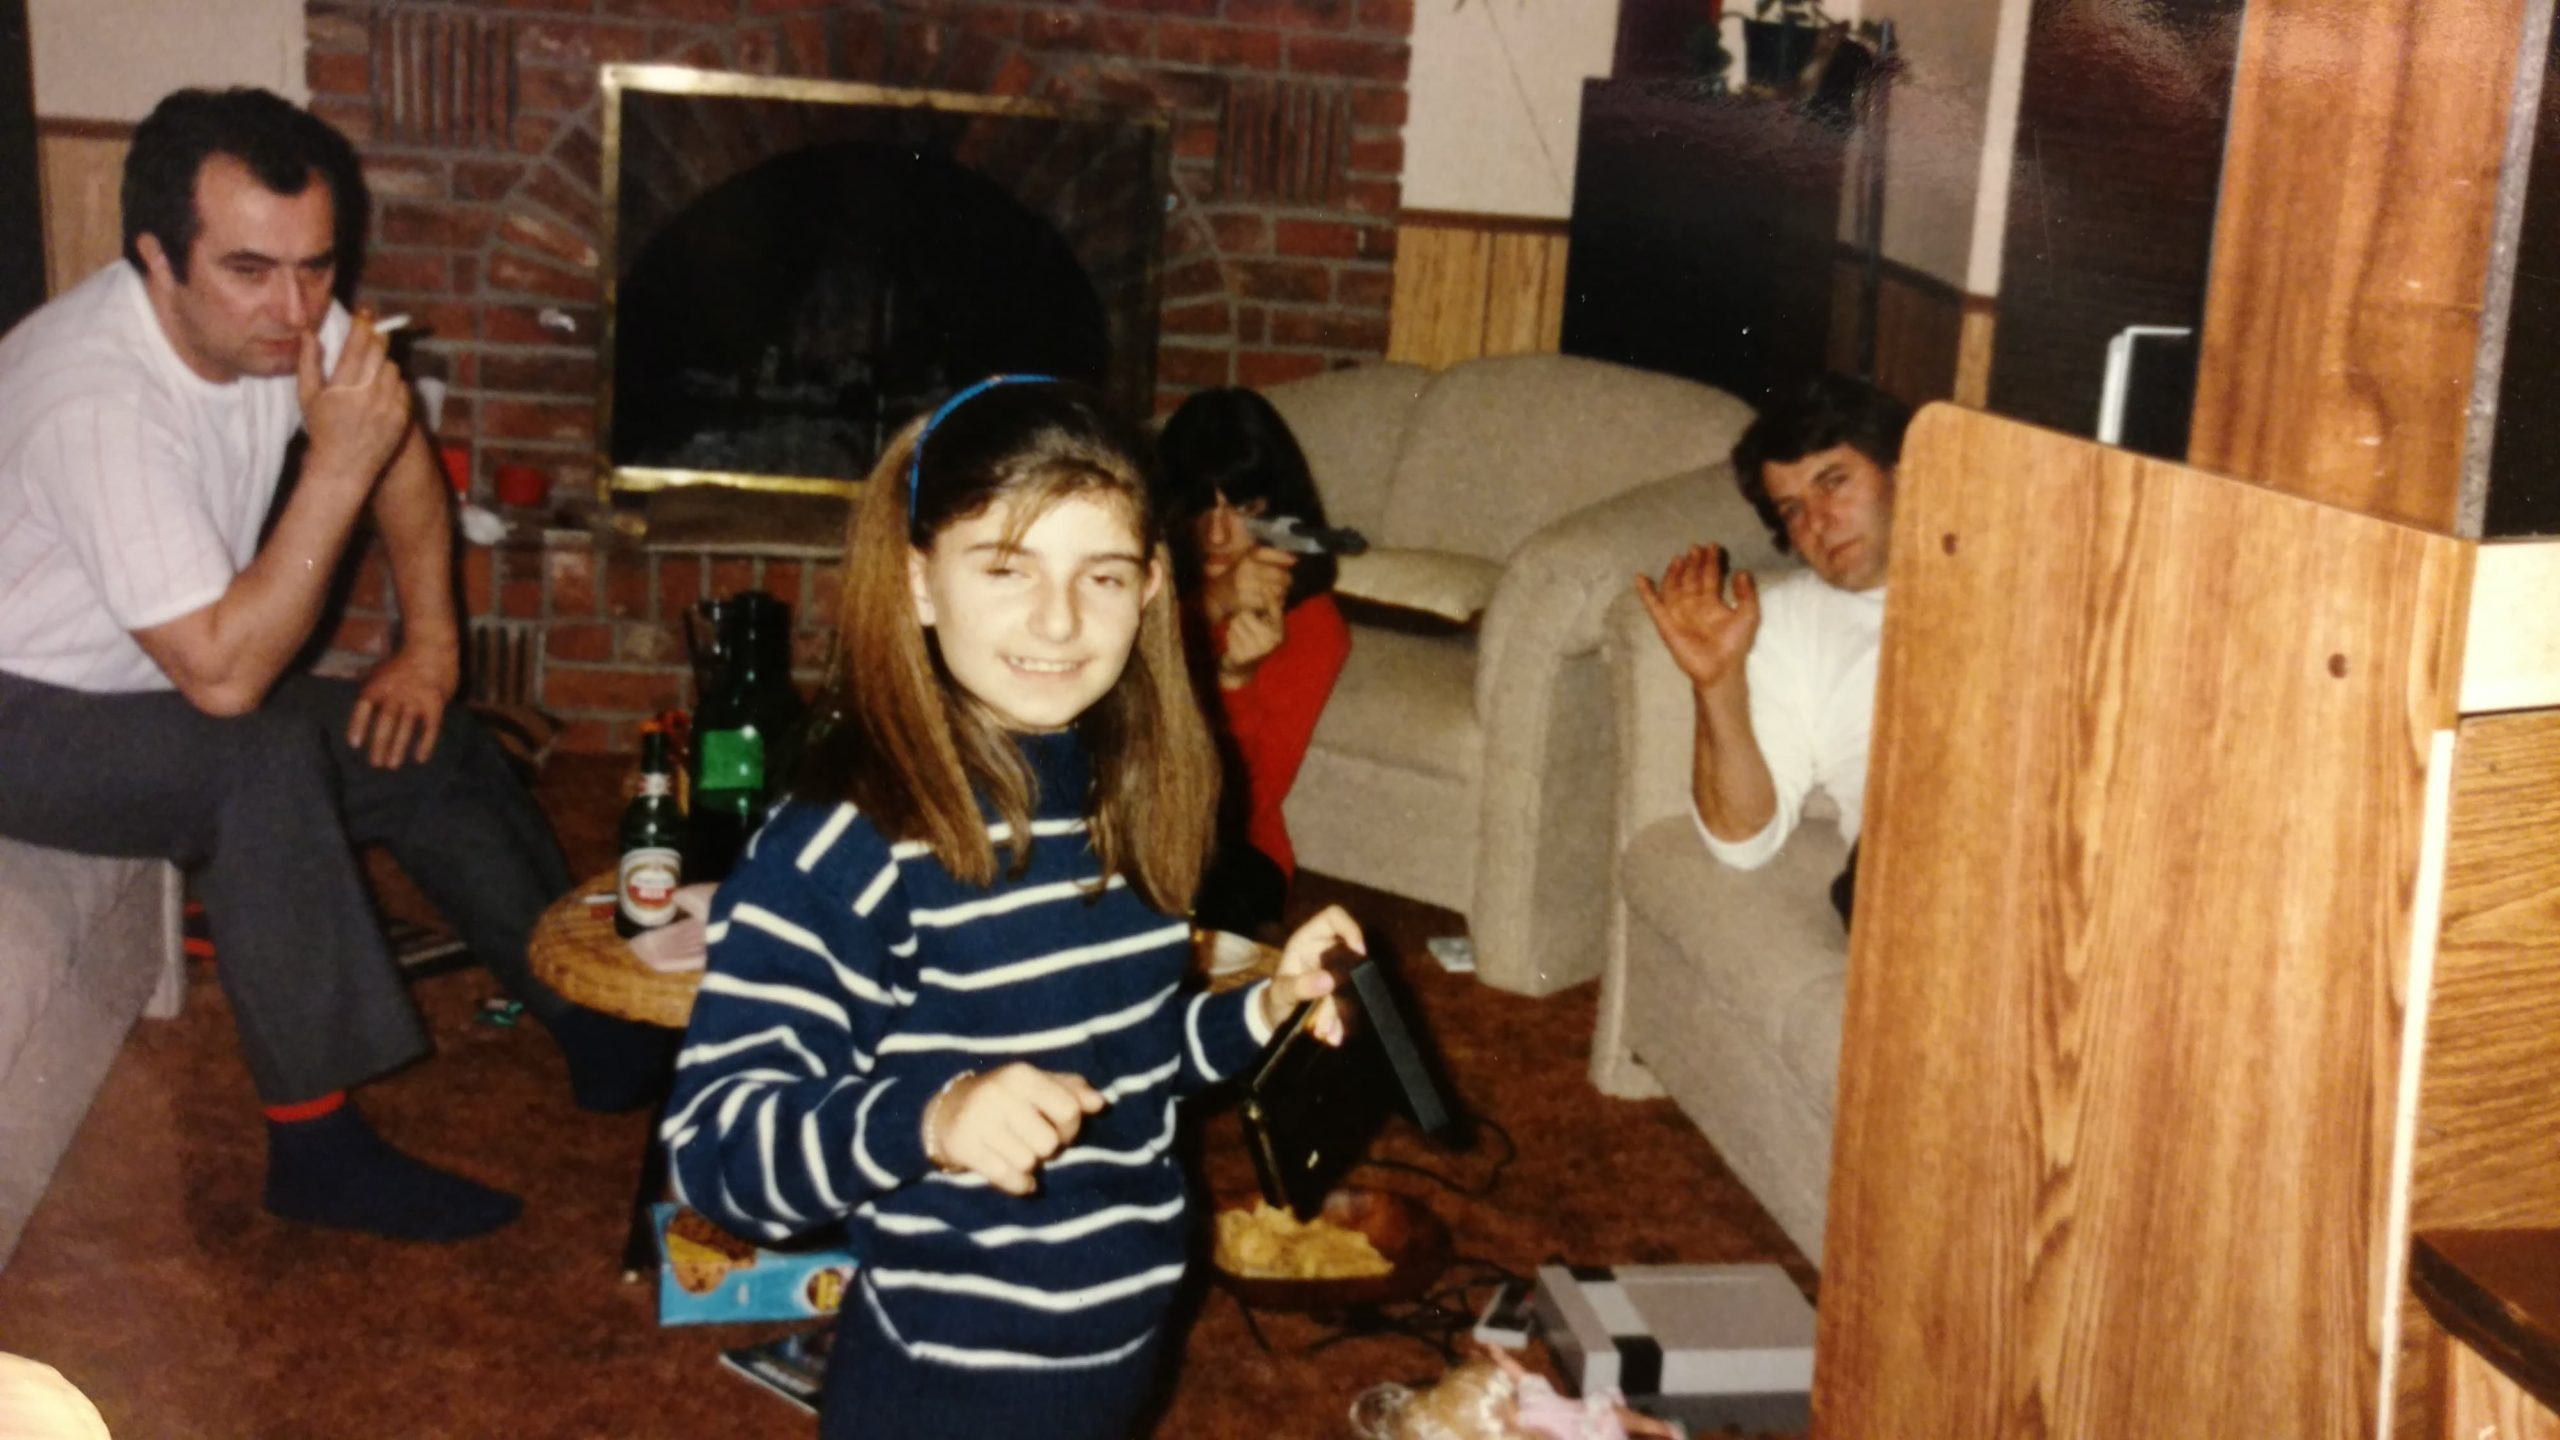 This is the only photo I have that captures this moment. You can see my cousin Eva in the background shooting. My uncle is smoking on the left and that's my dad waving on the right. I'm in front with my crimped hair and goofy look.